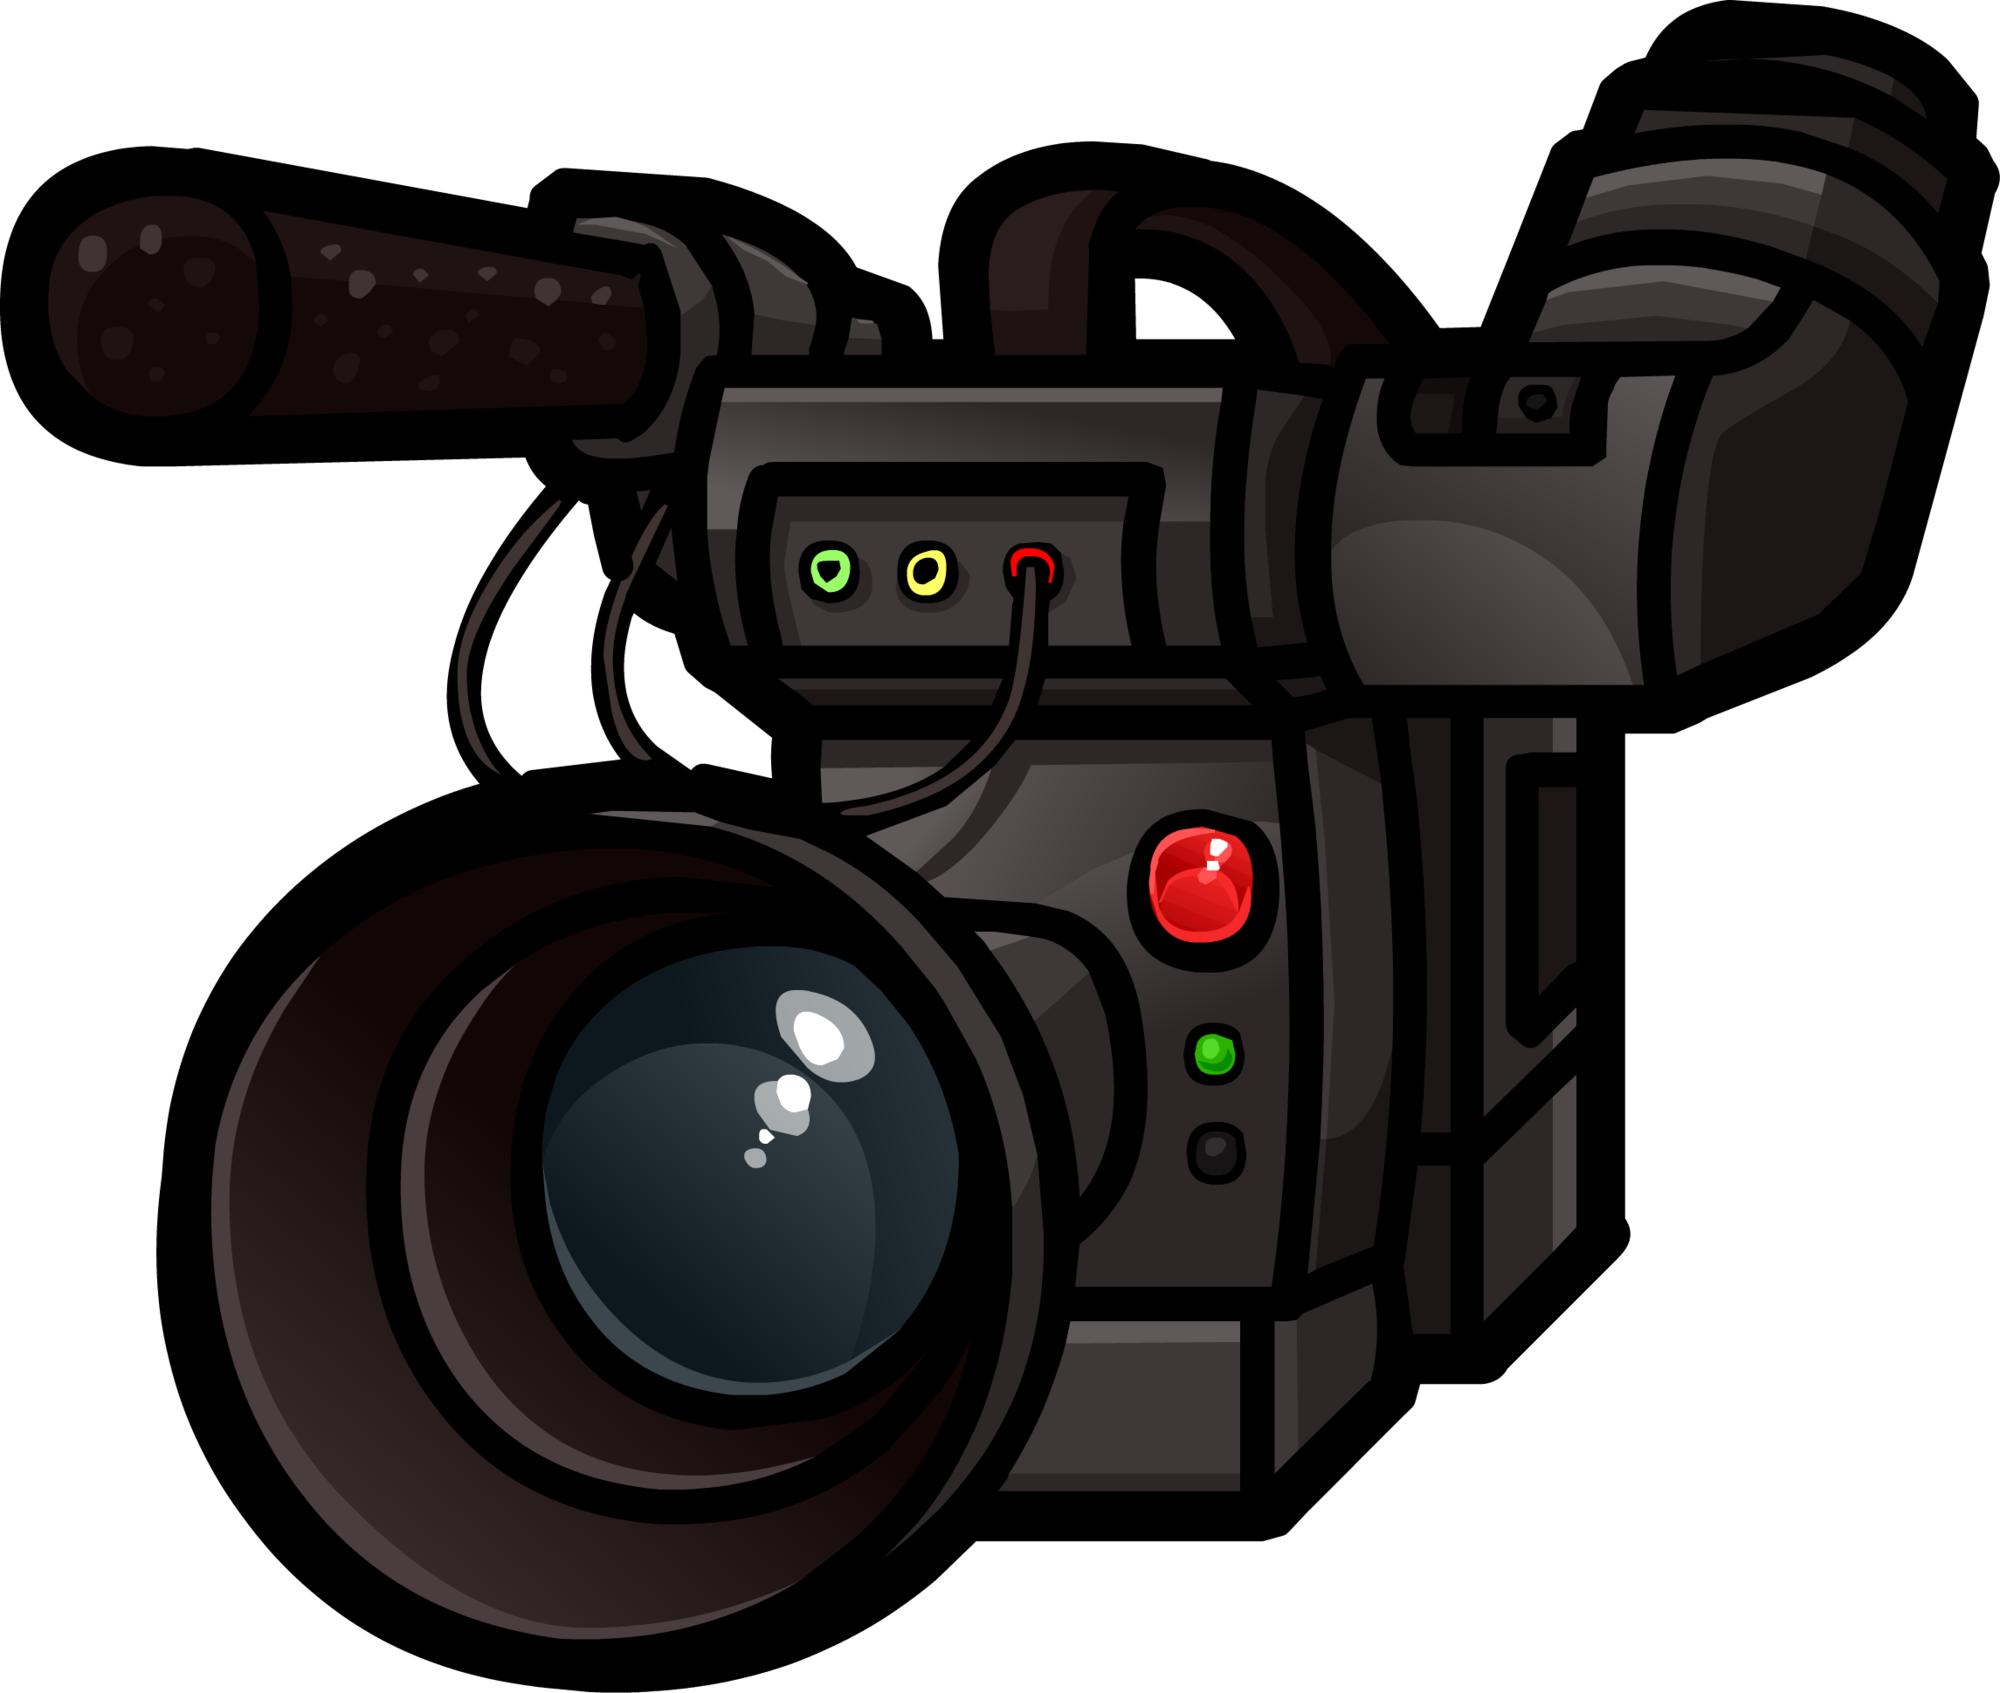 Camera clip art transparent background. Video png free images